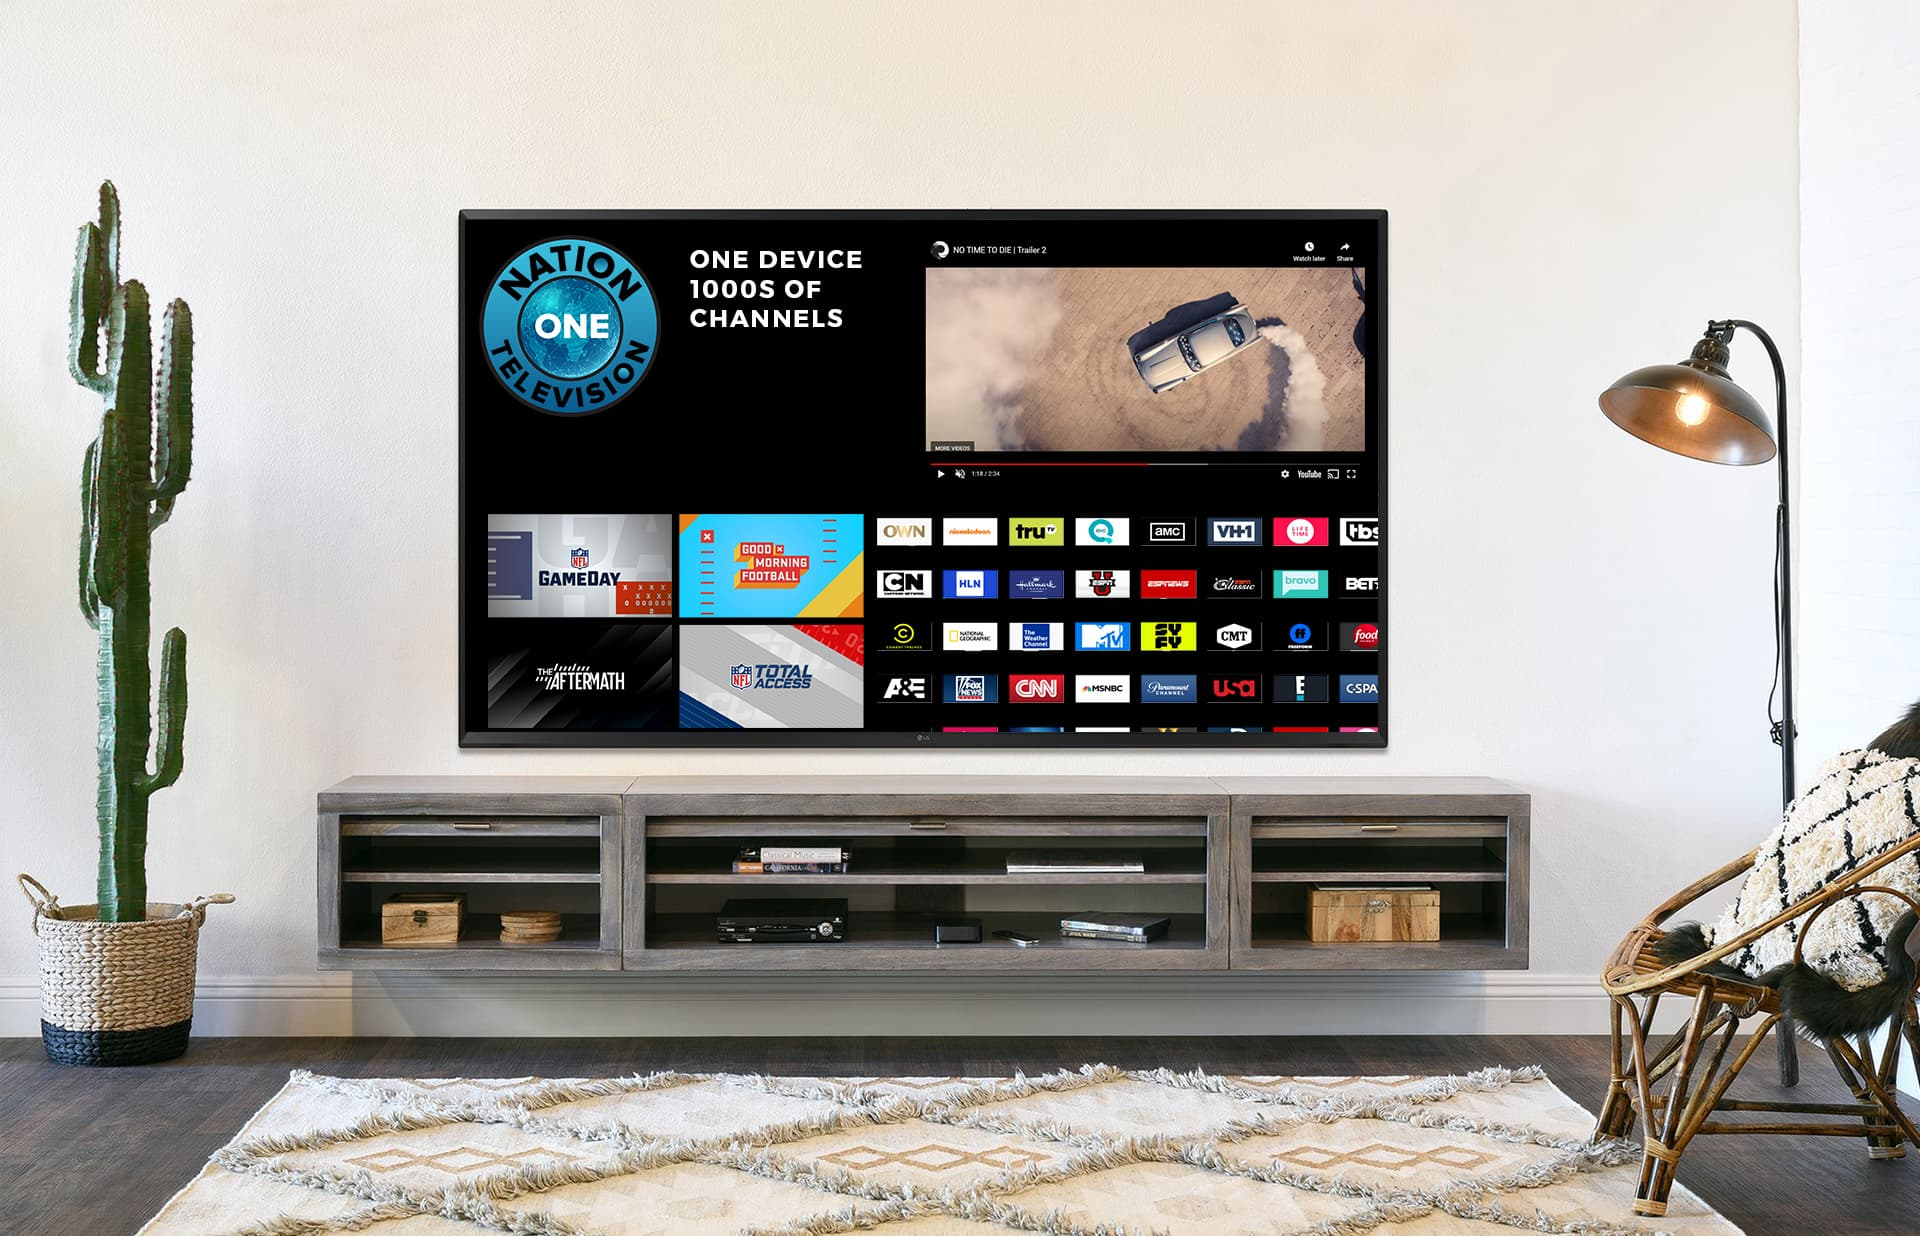 Streaming Live TV